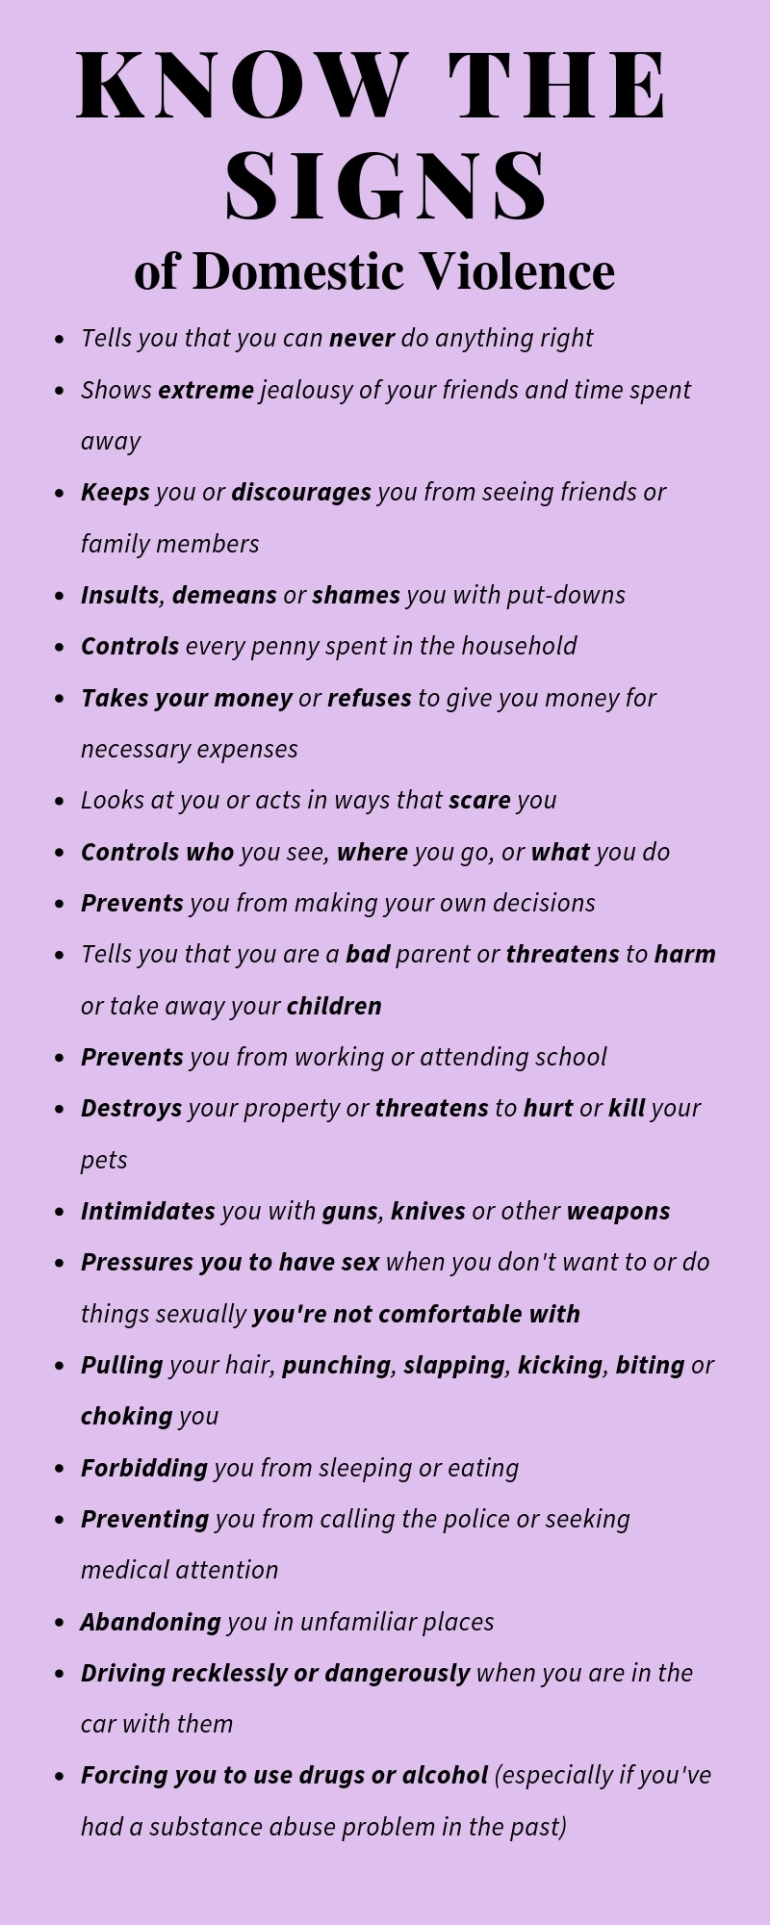 Know the signs (1).jpg